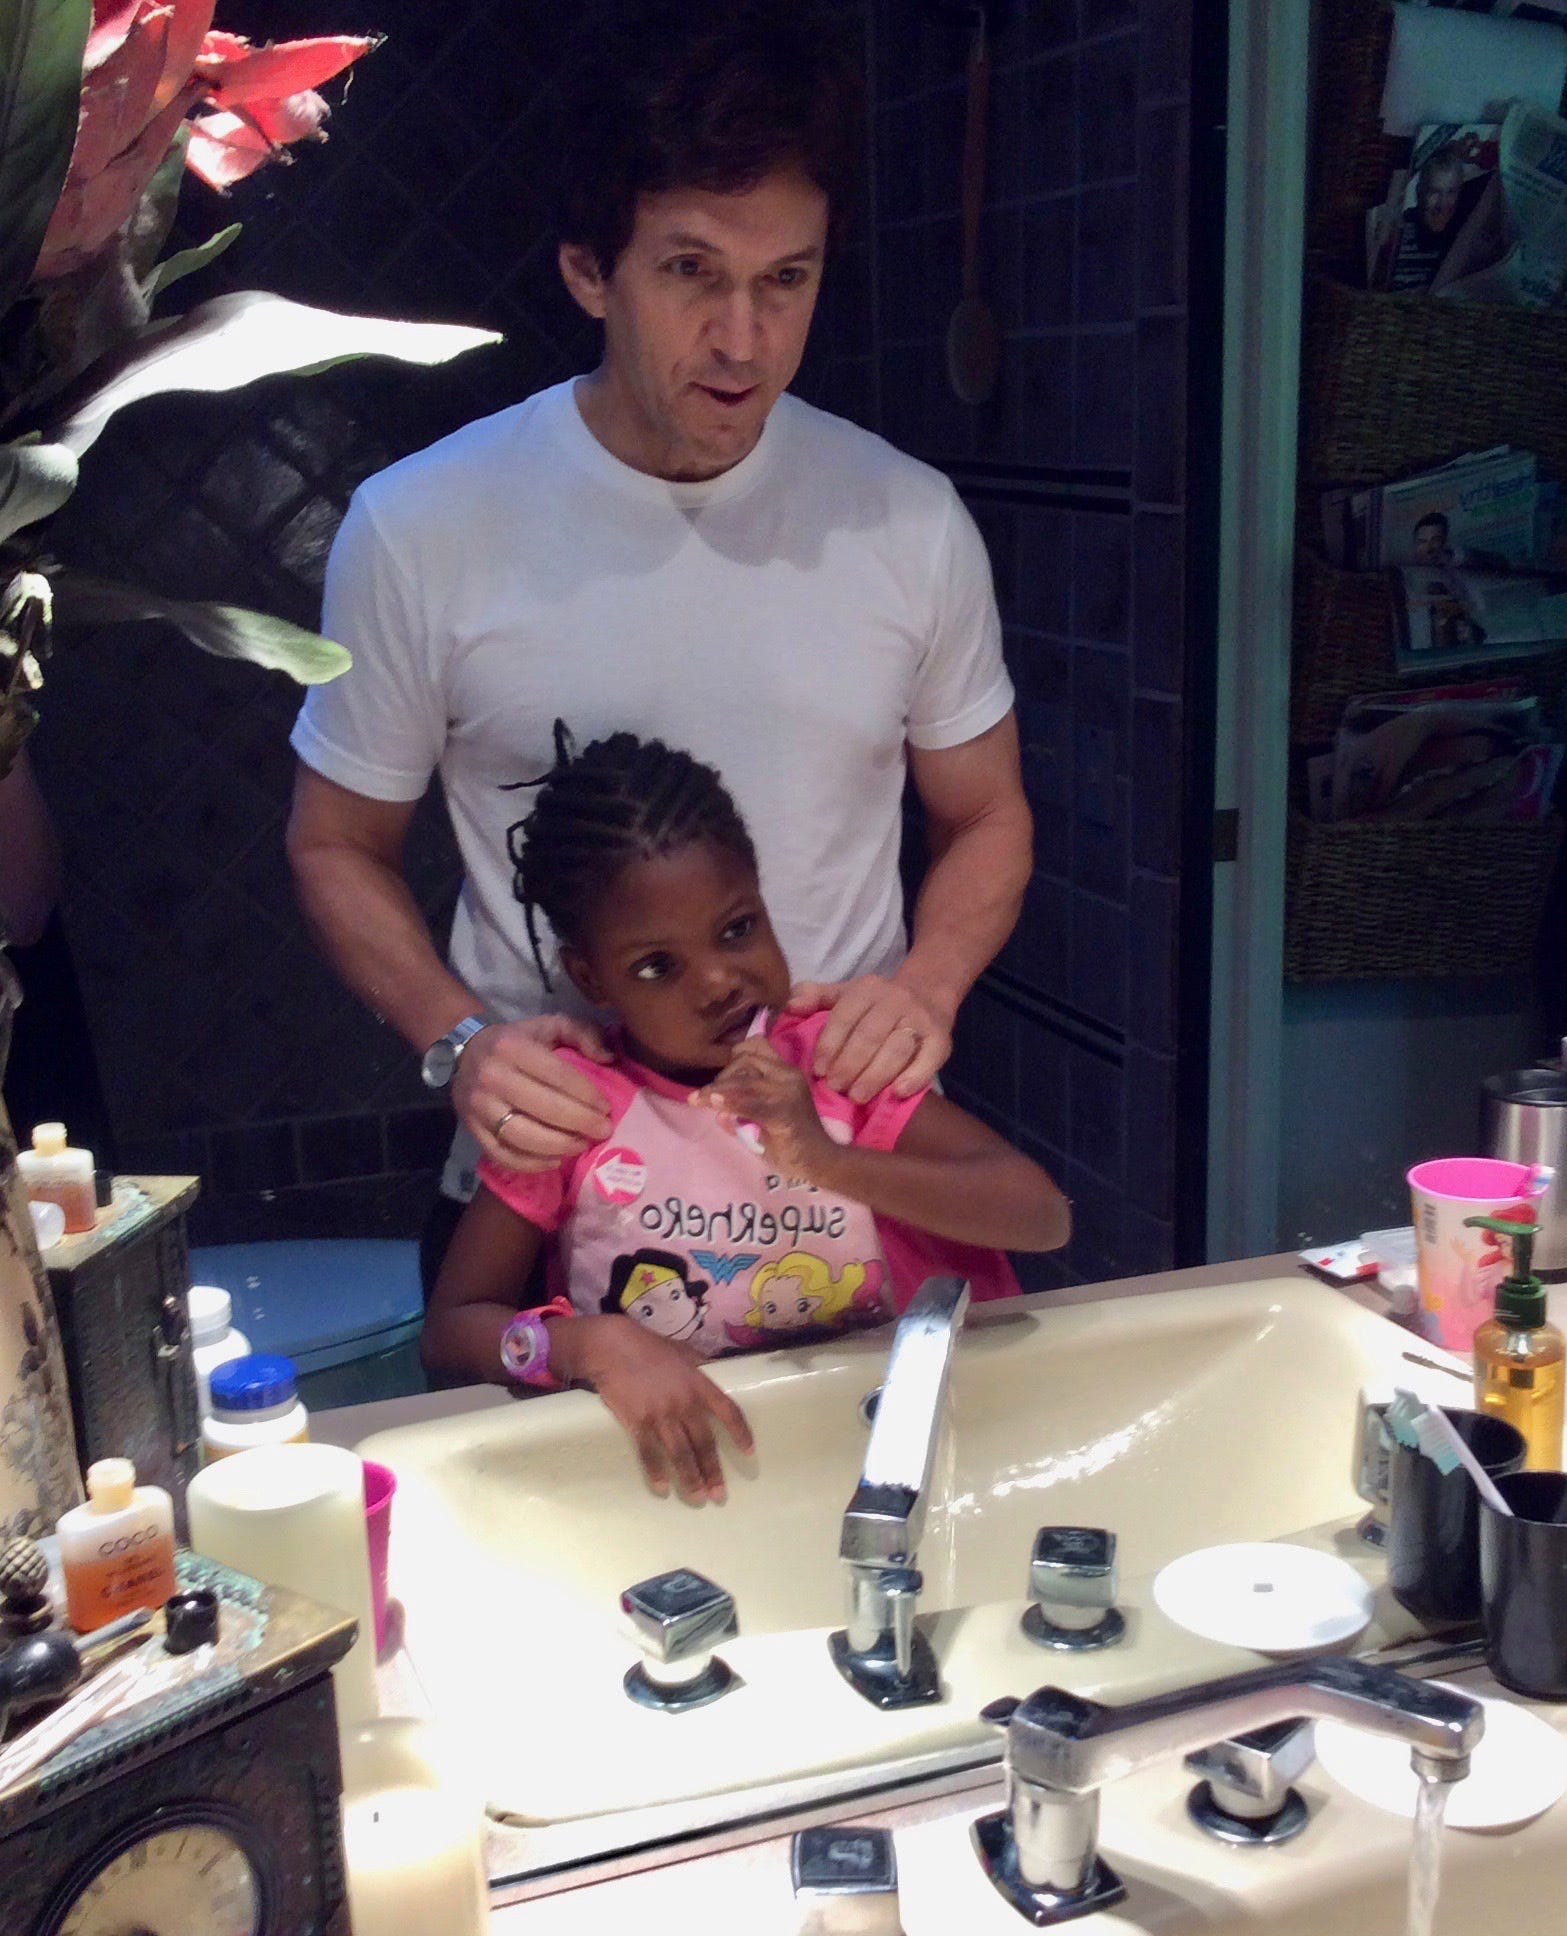 Chika, 5, and Mitch Albom during their daily morning and evening teeth brushing routine at the Alboms' home in July 2015.